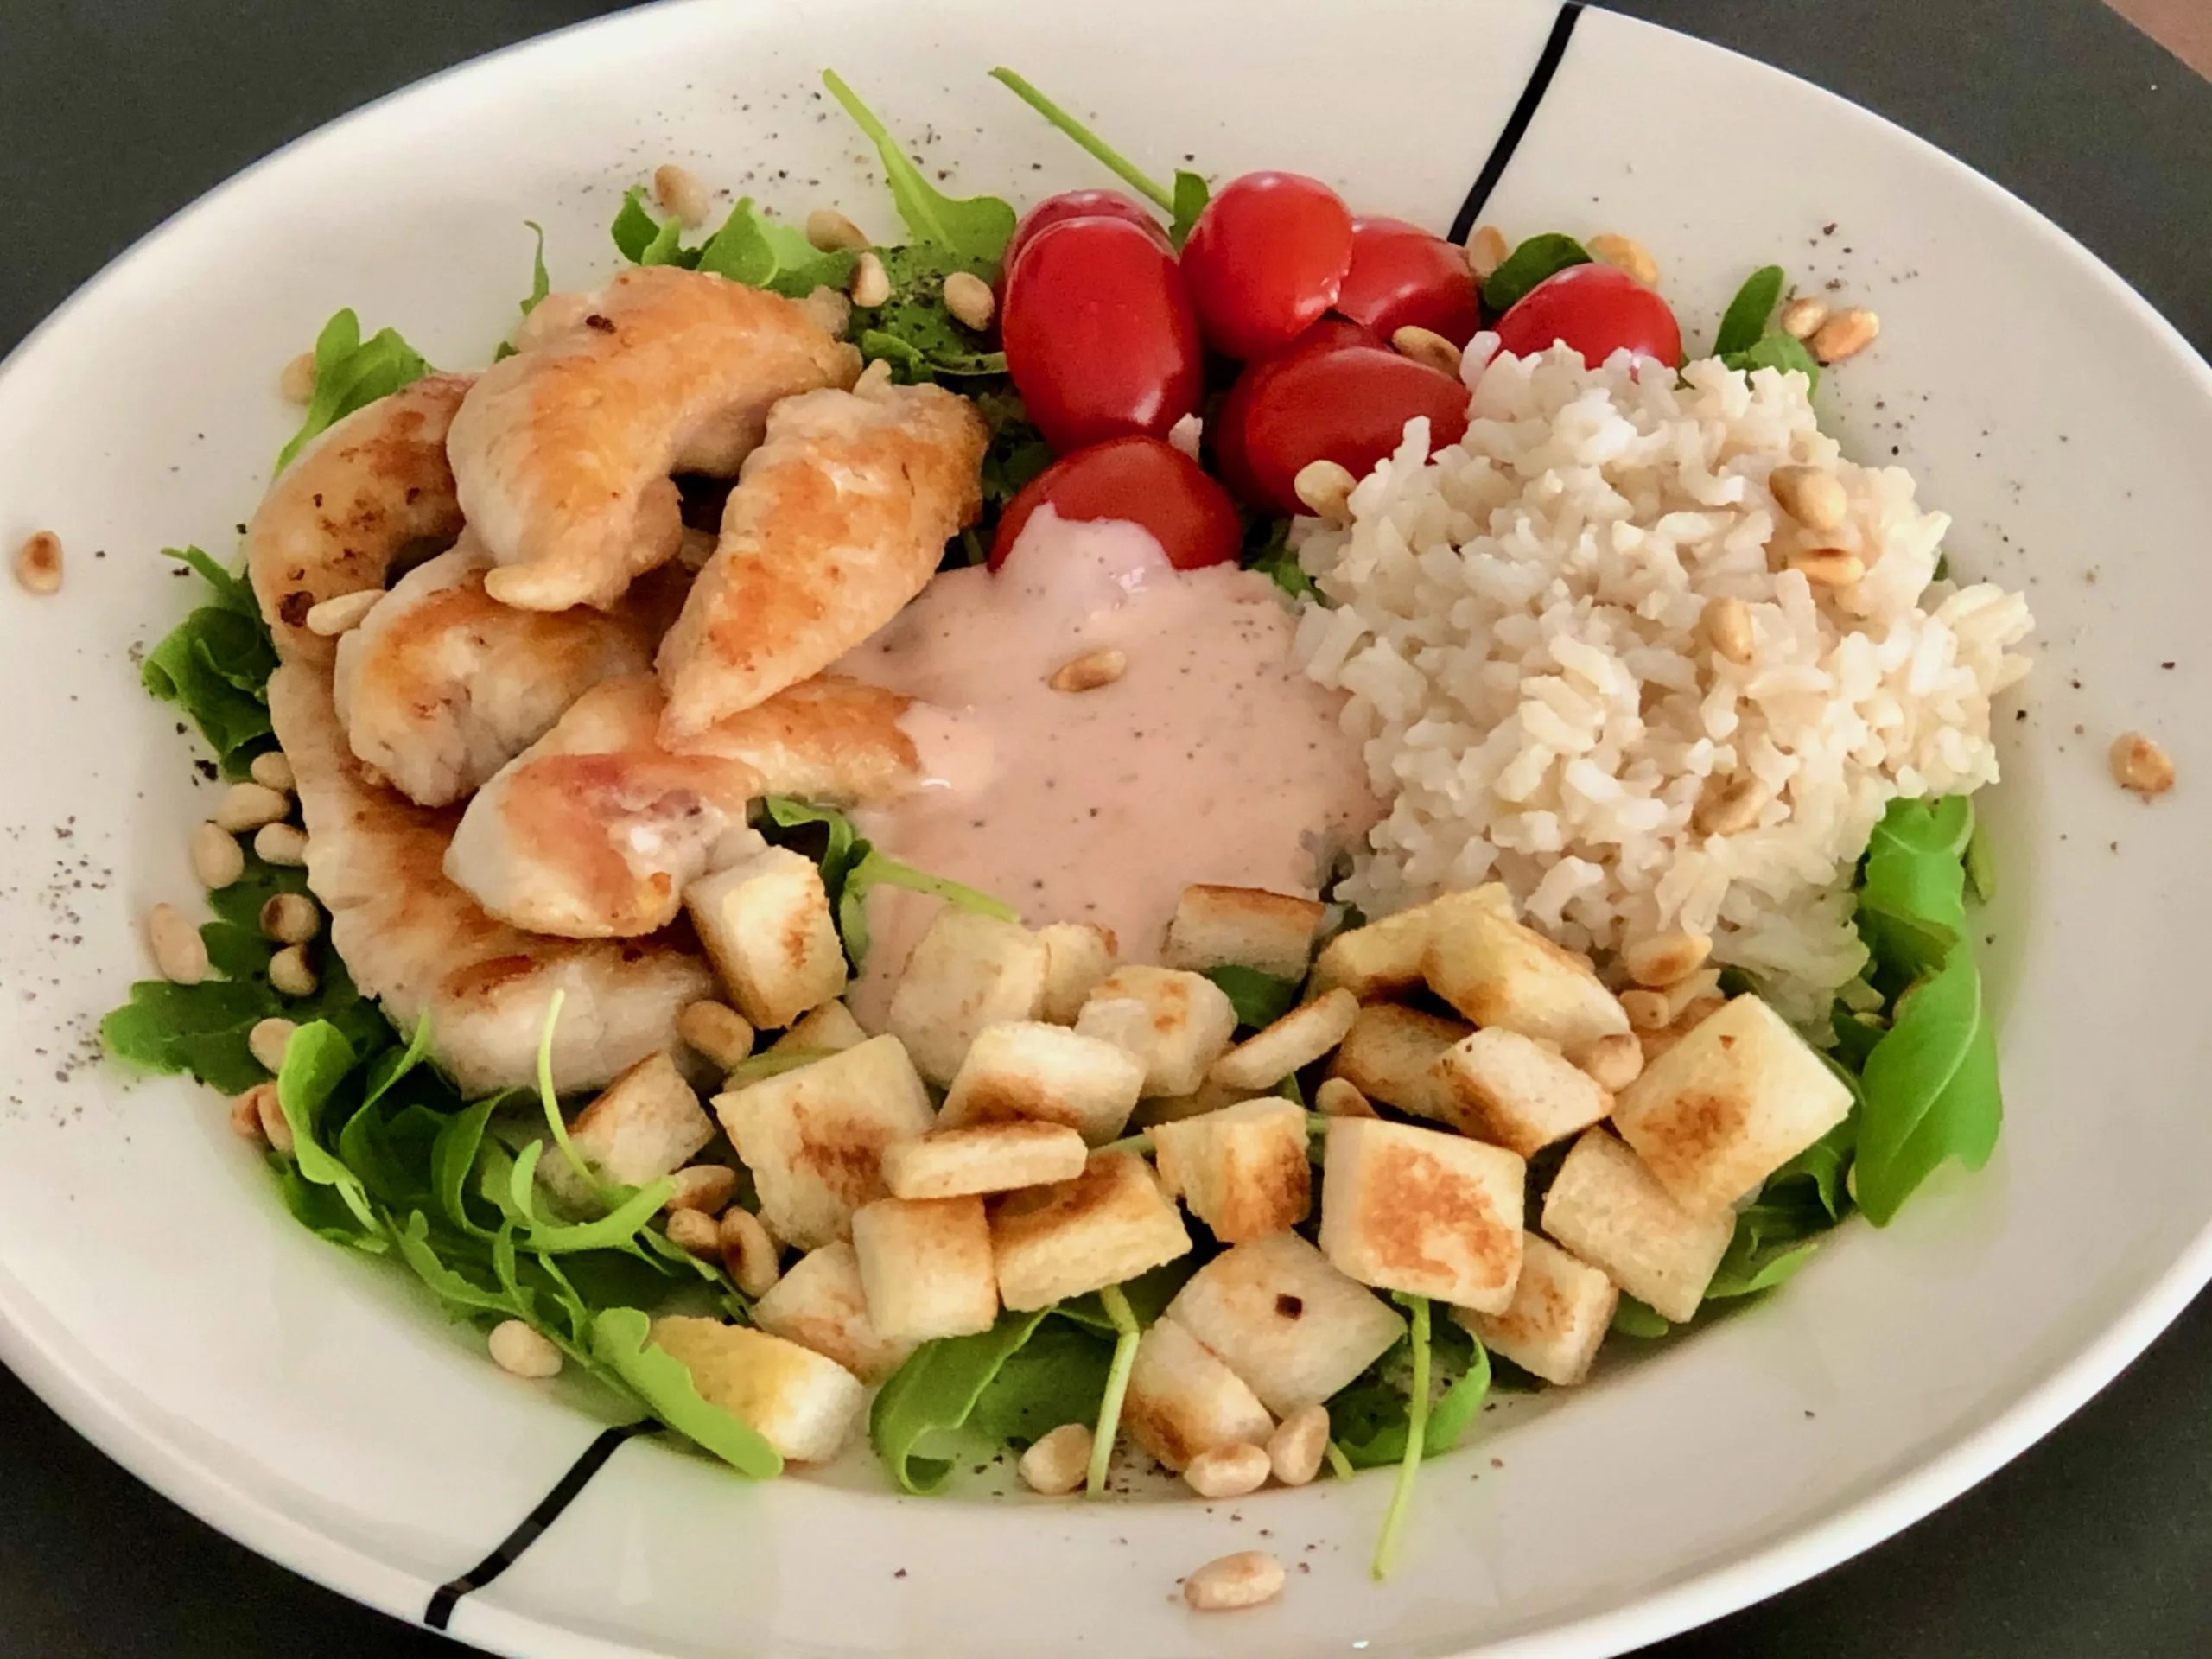 cold and light lunch for hot summer days with chicken and croutons